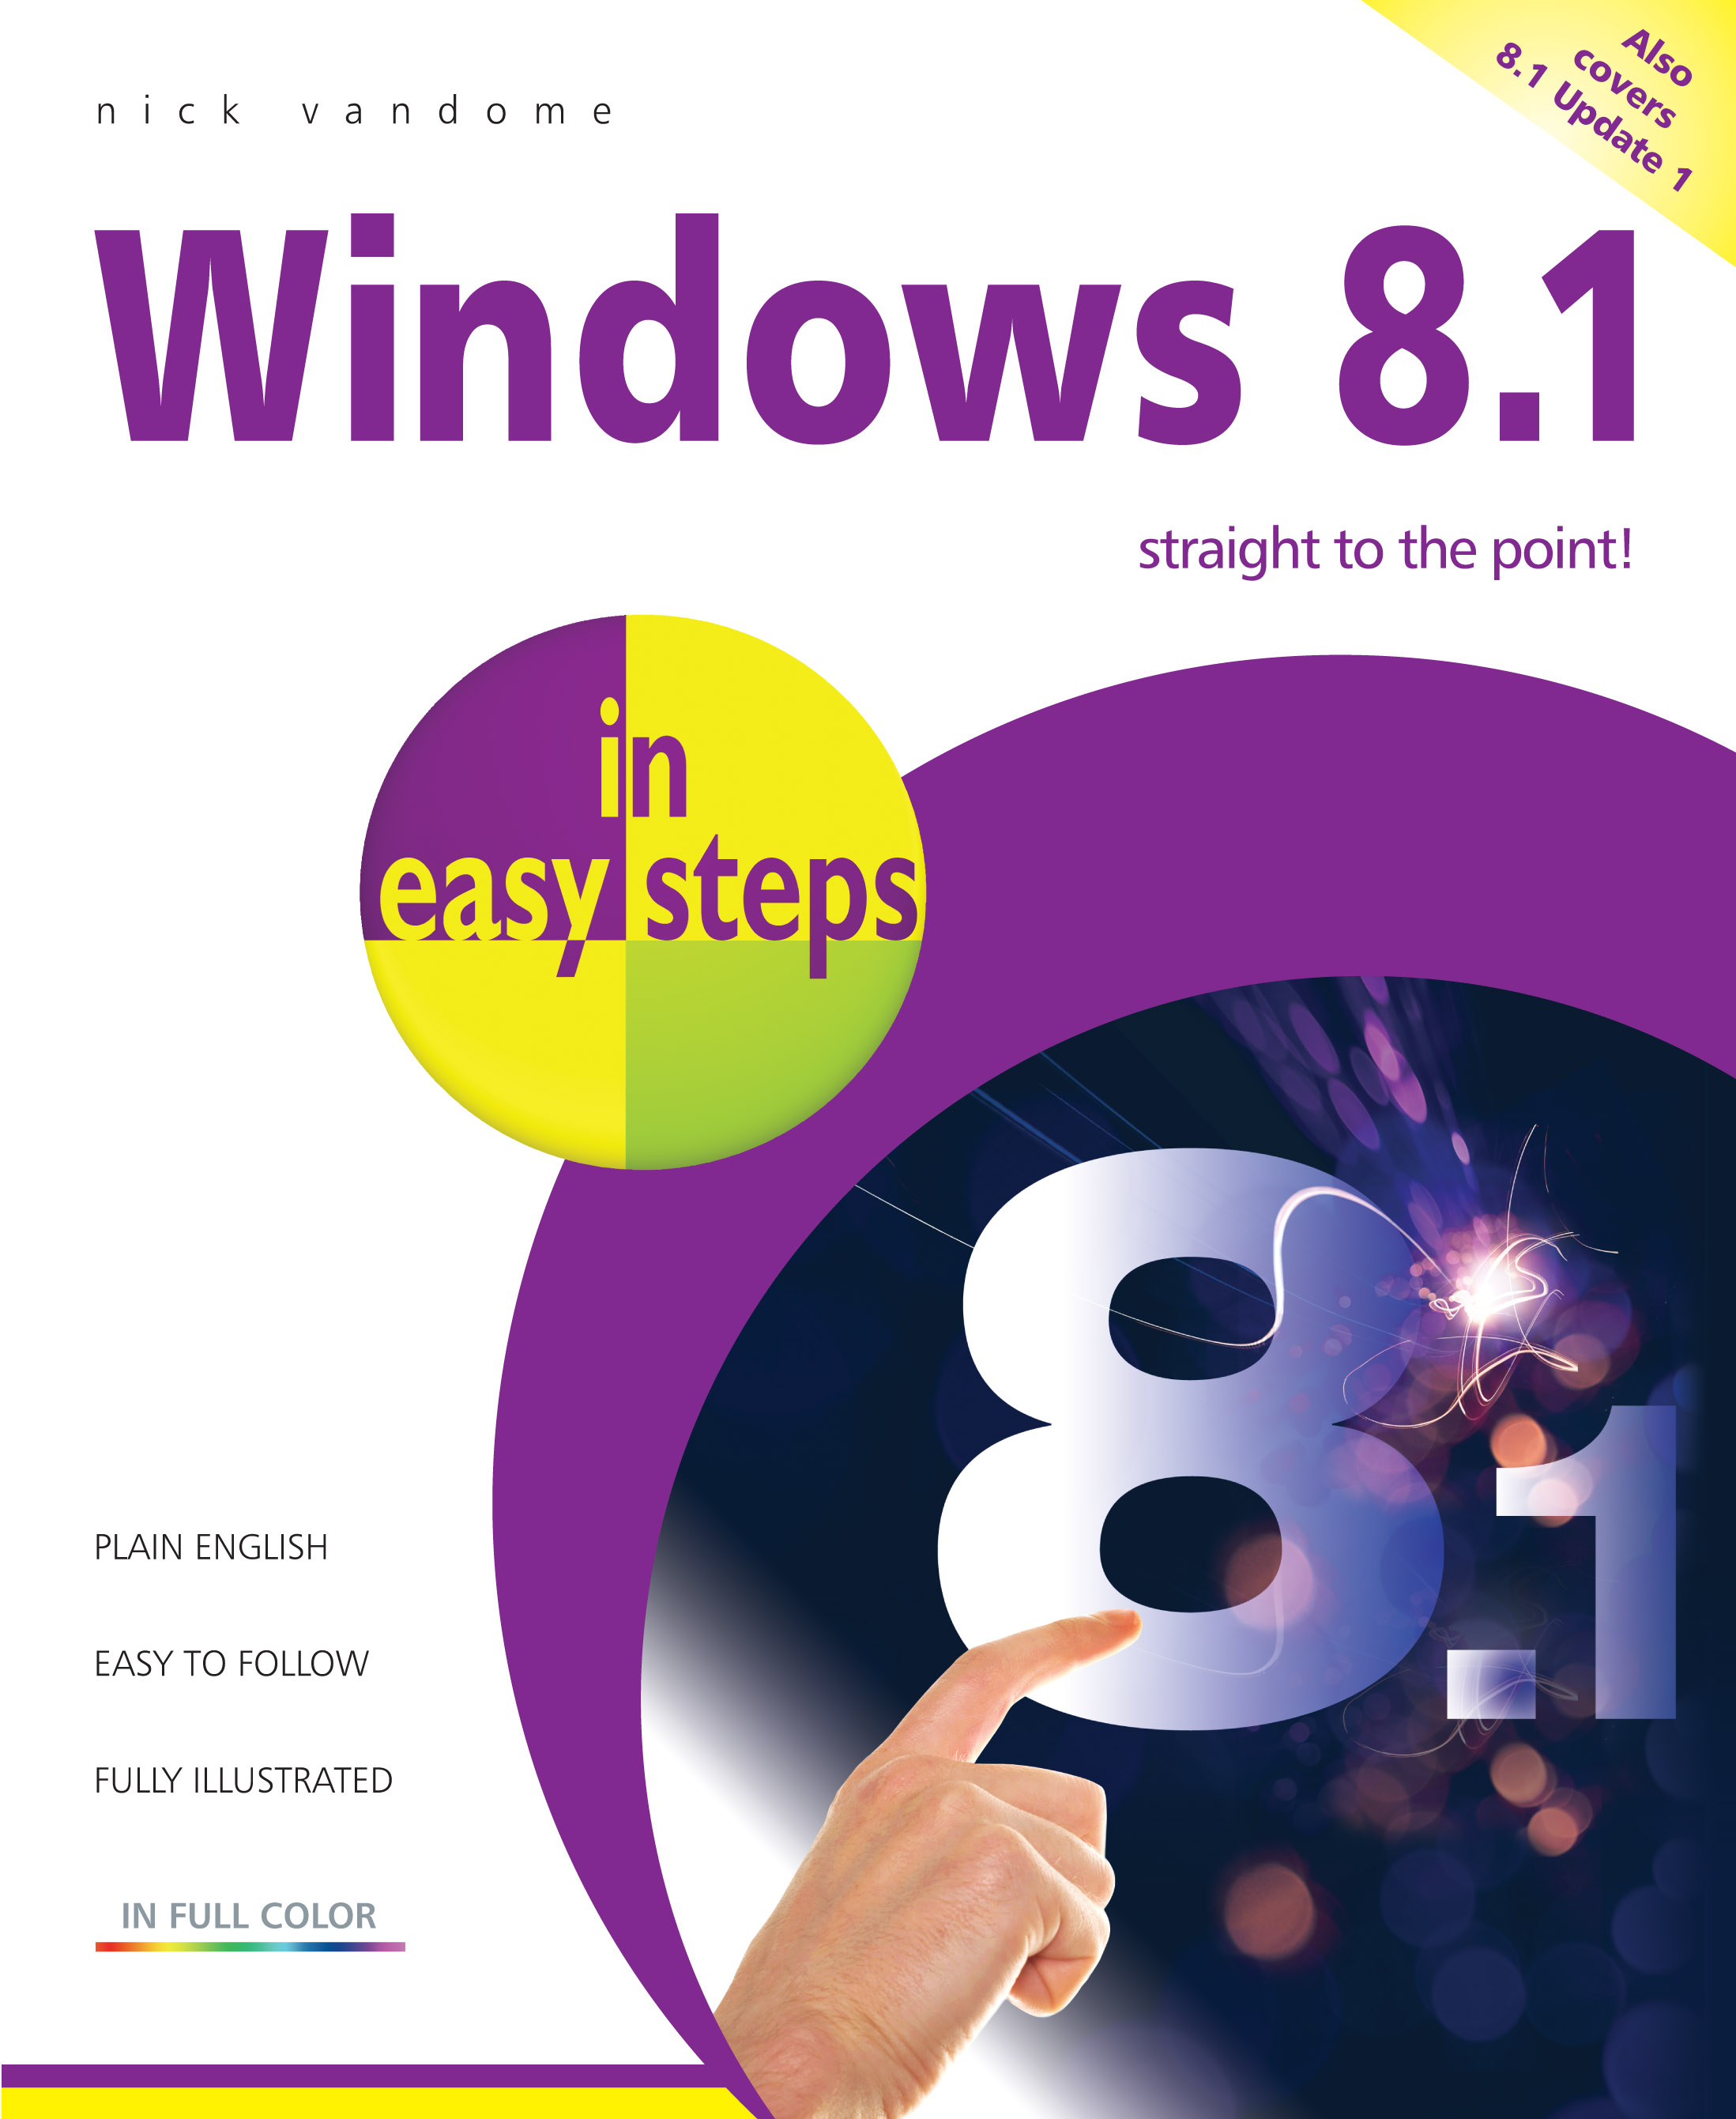 9781840786149 Windows 8.1 in easy steps